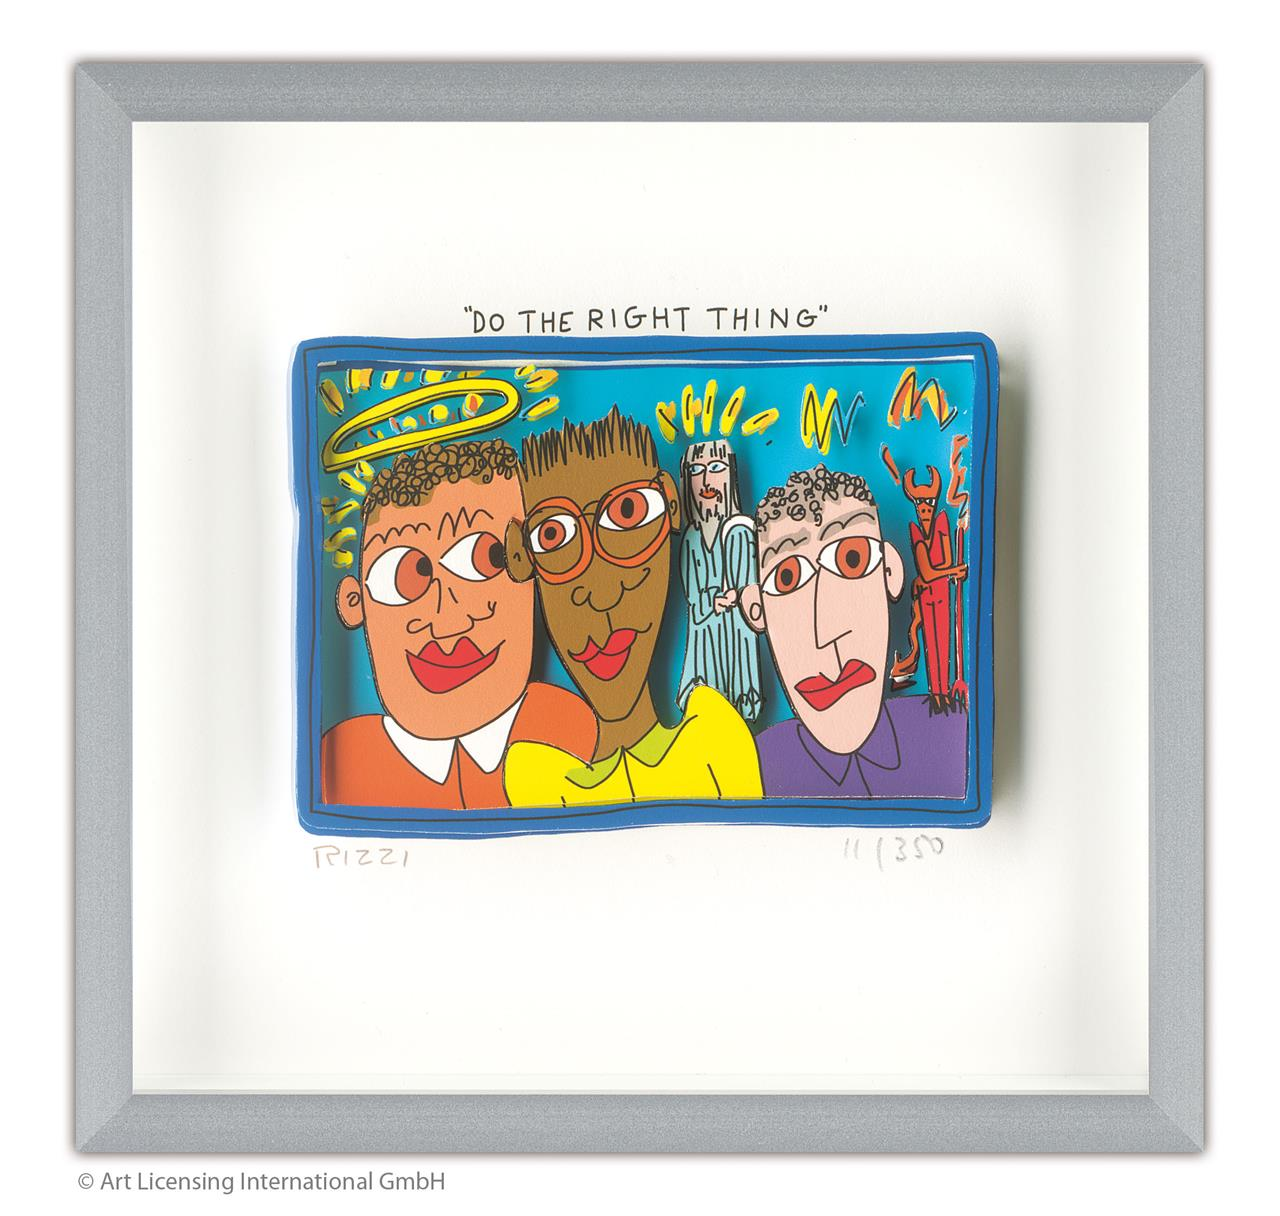 James Rizzi - DO THE RIGHT THING